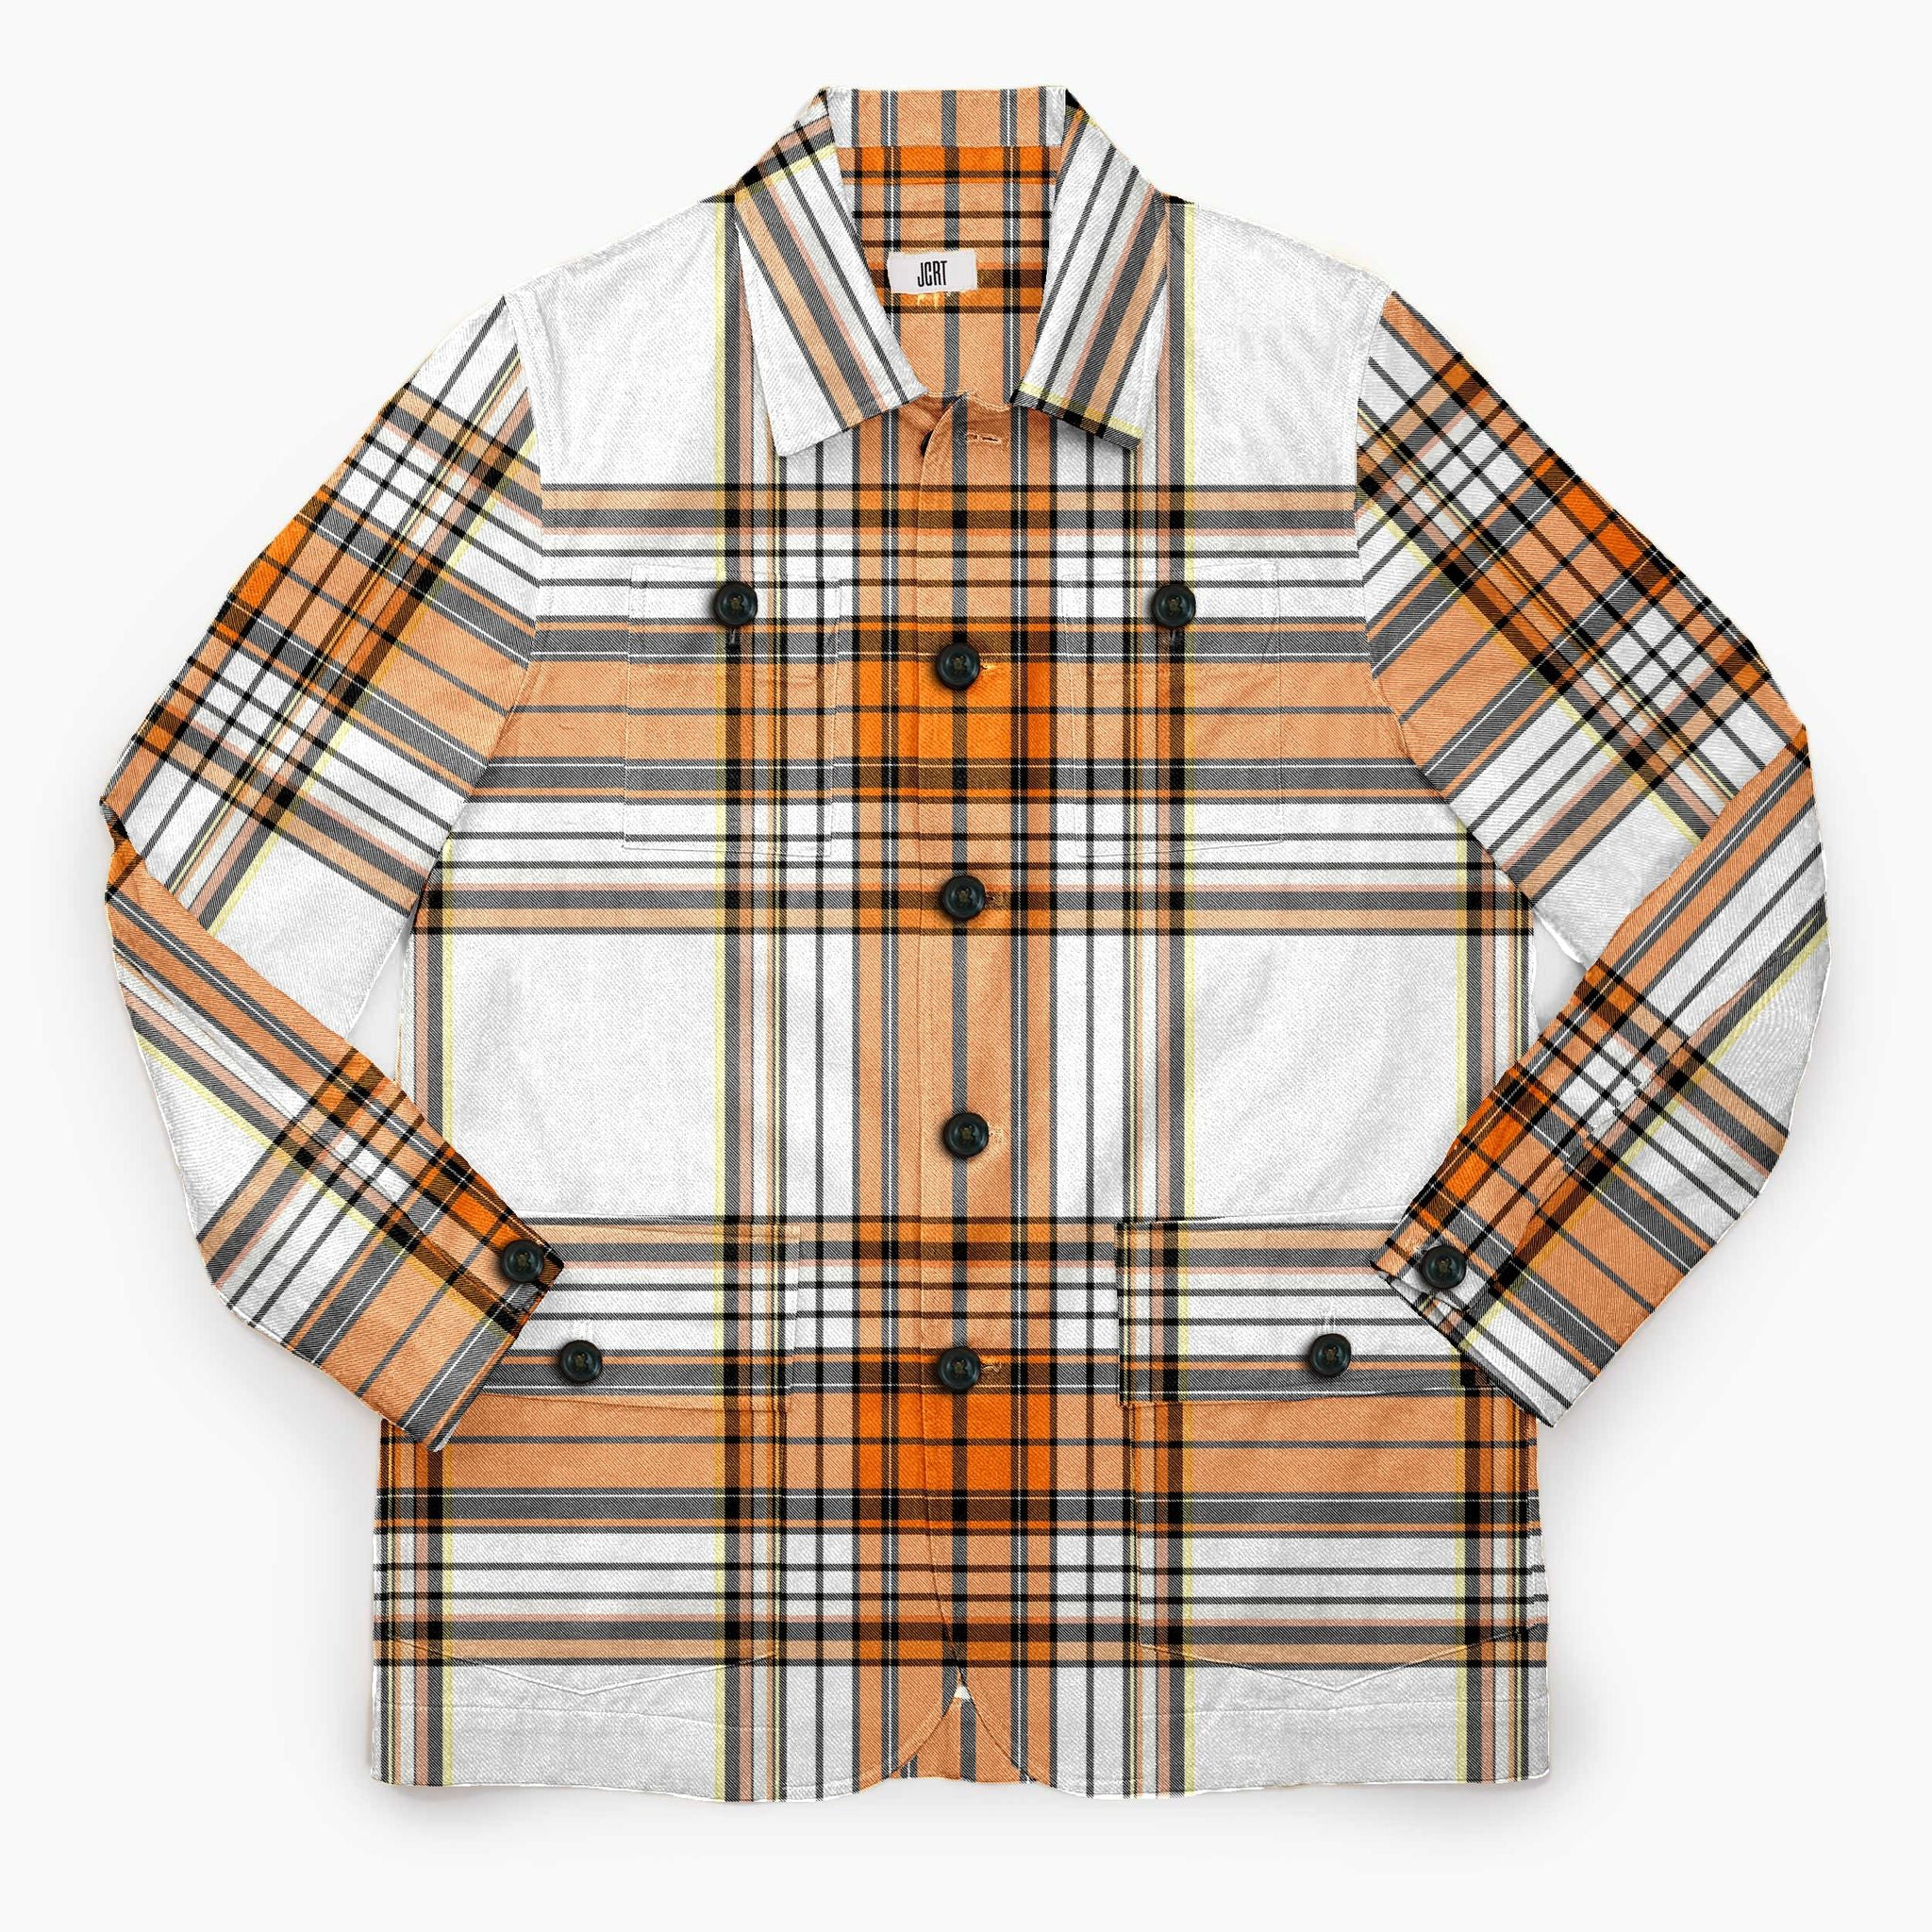 The A Clockwork Orange Beethoven Plaid Chore Coat